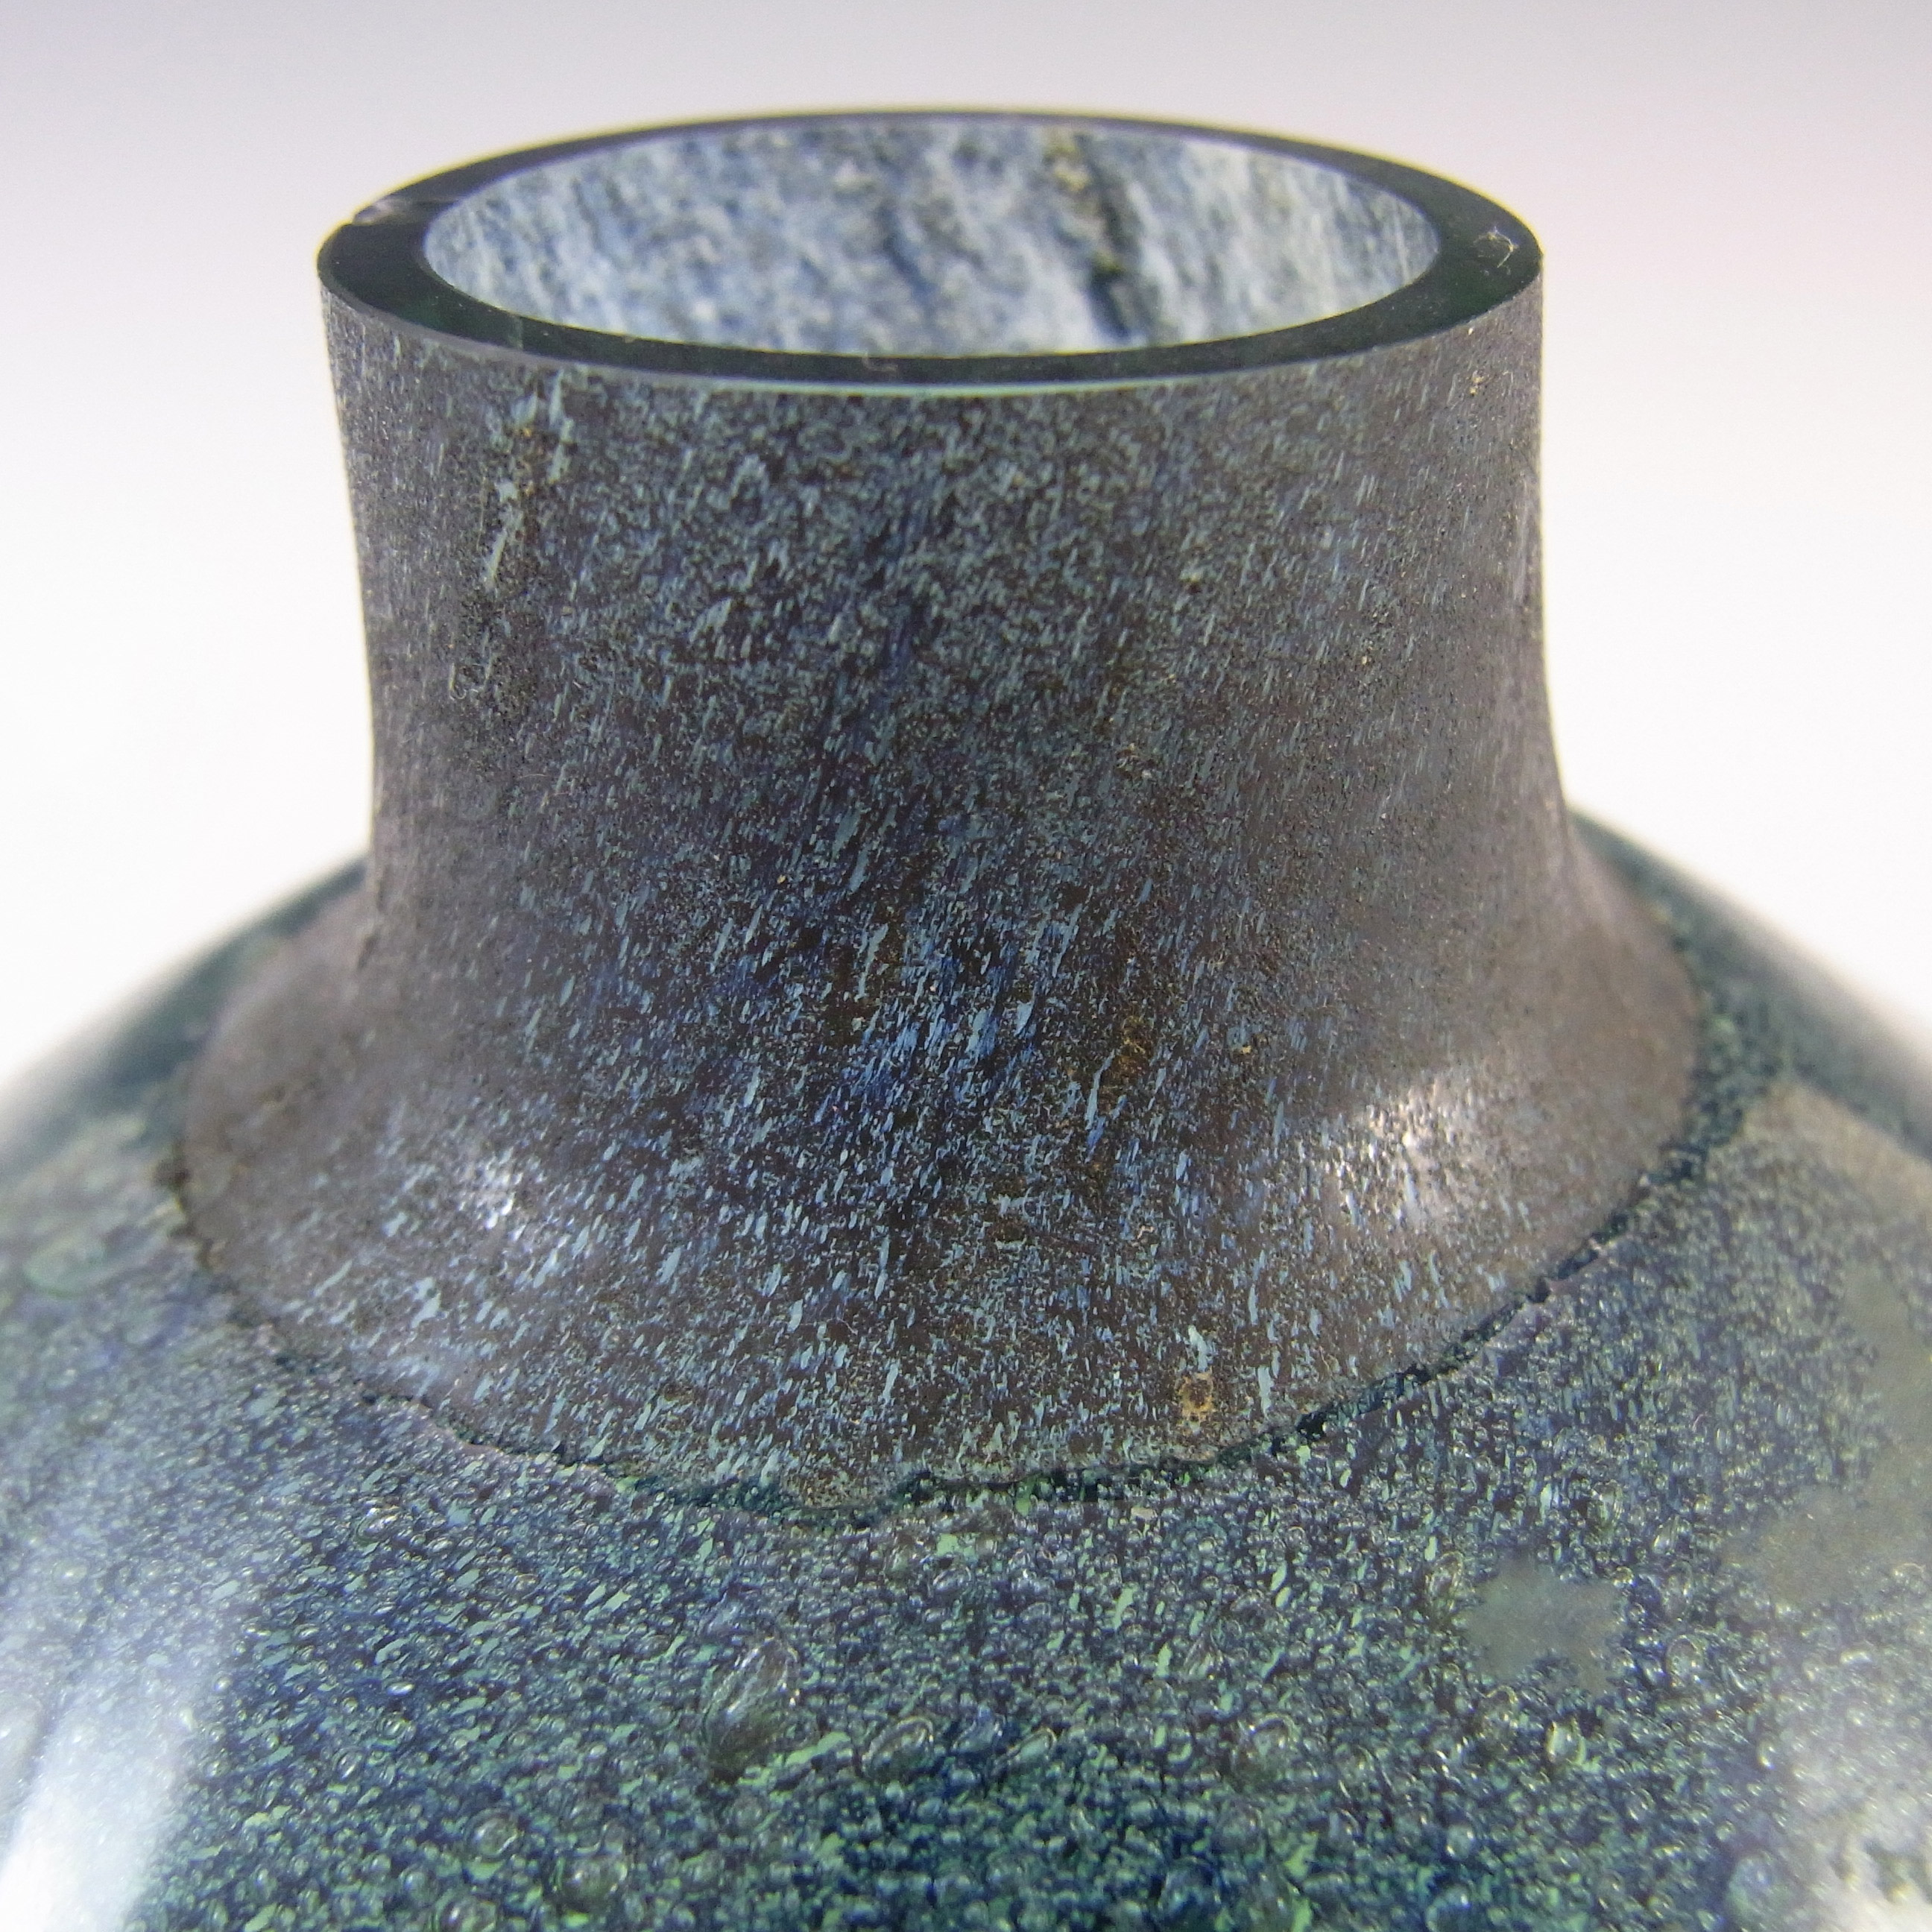 LABELLED Randsfjord Norwegian Glass Vase by Benny Motzfeldt - Click Image to Close